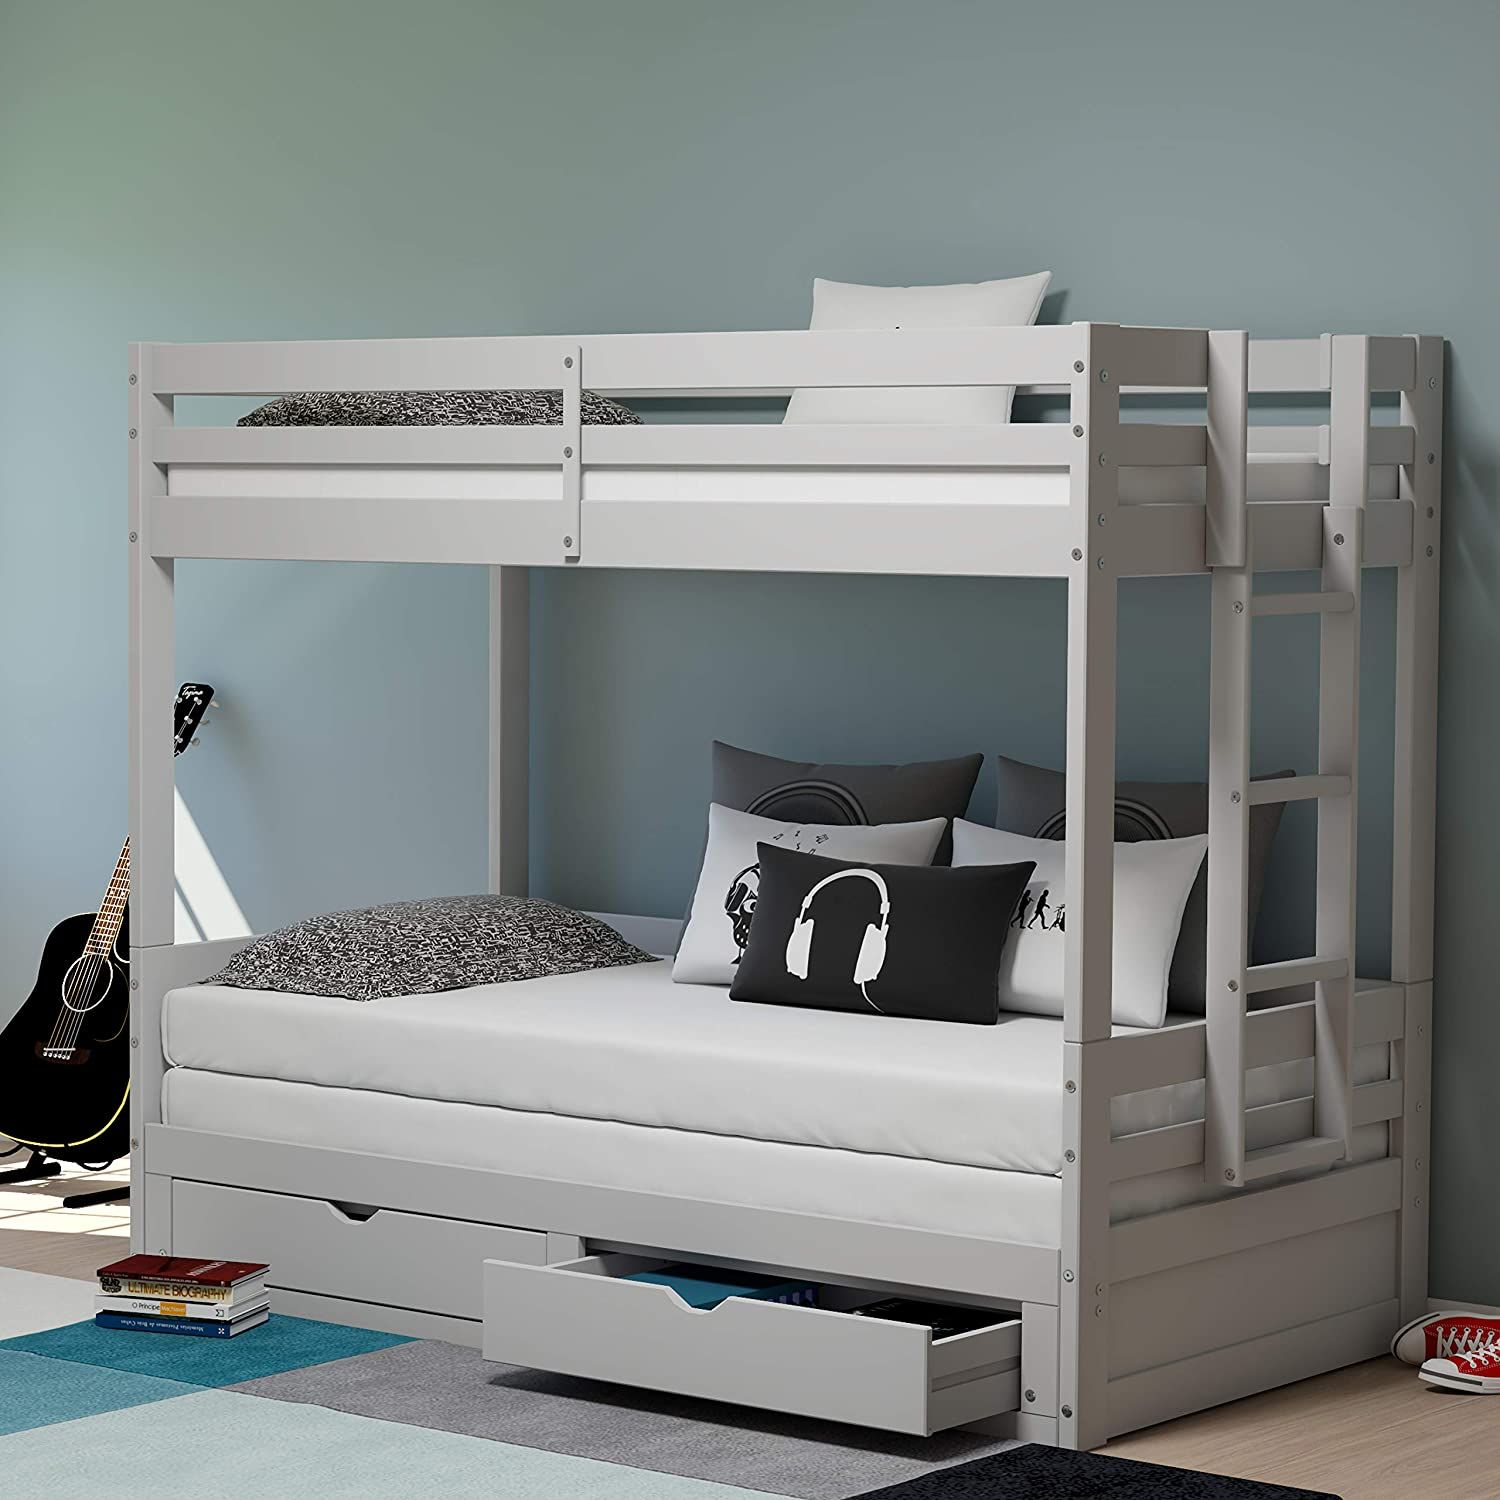 Alaterre Furniture Jasper Twin To King Extending Day Bed With Bunk Bed And Storage Drawers Dove Gray Home In 2020 Bed Storage Drawers Bunk Beds Junior Loft Beds